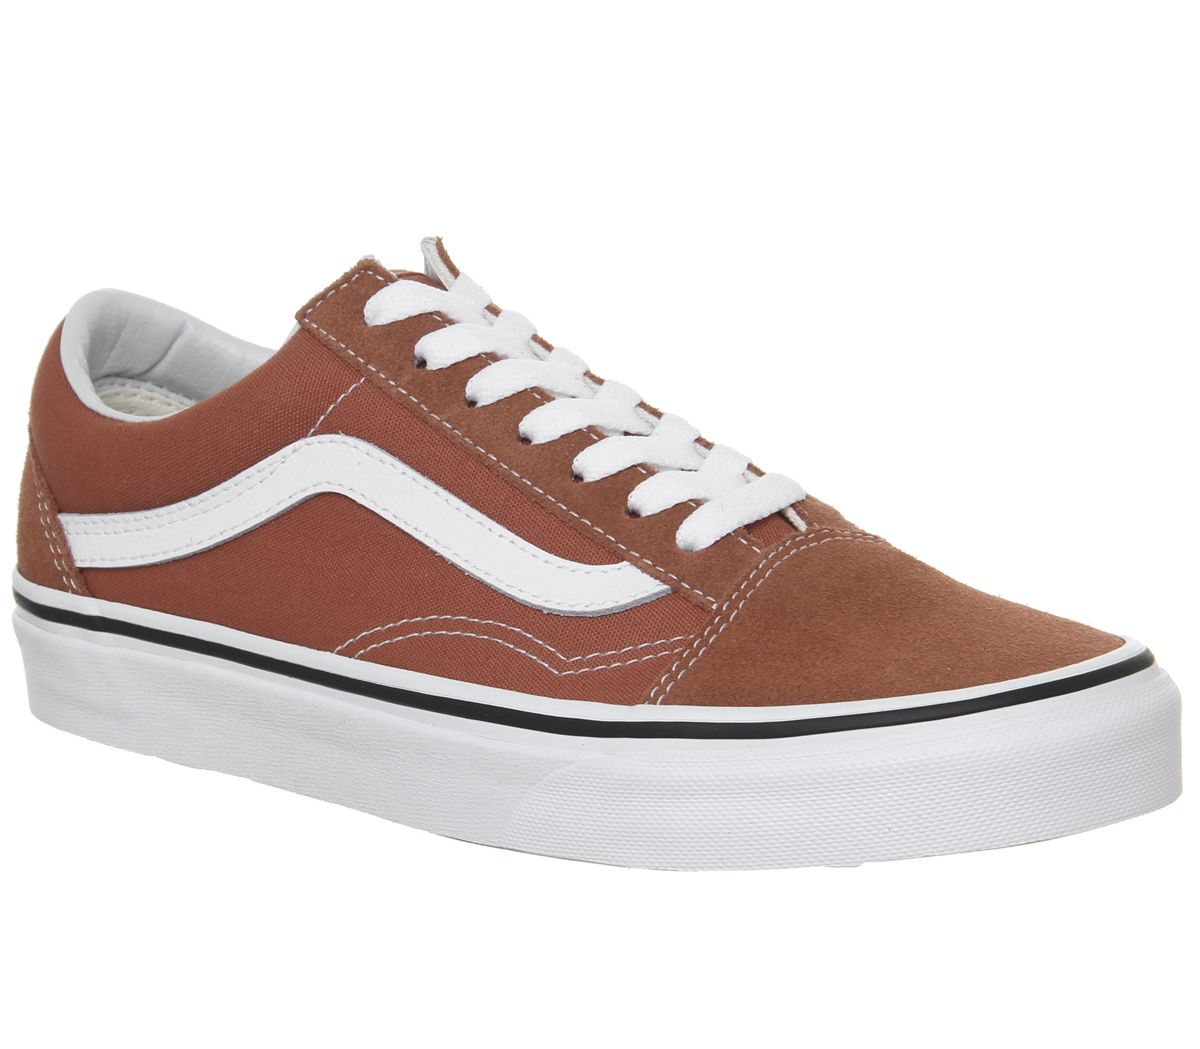 33bb0415ad Vans Old Skool Trainers Hot Sauce True White - Unisex Sports